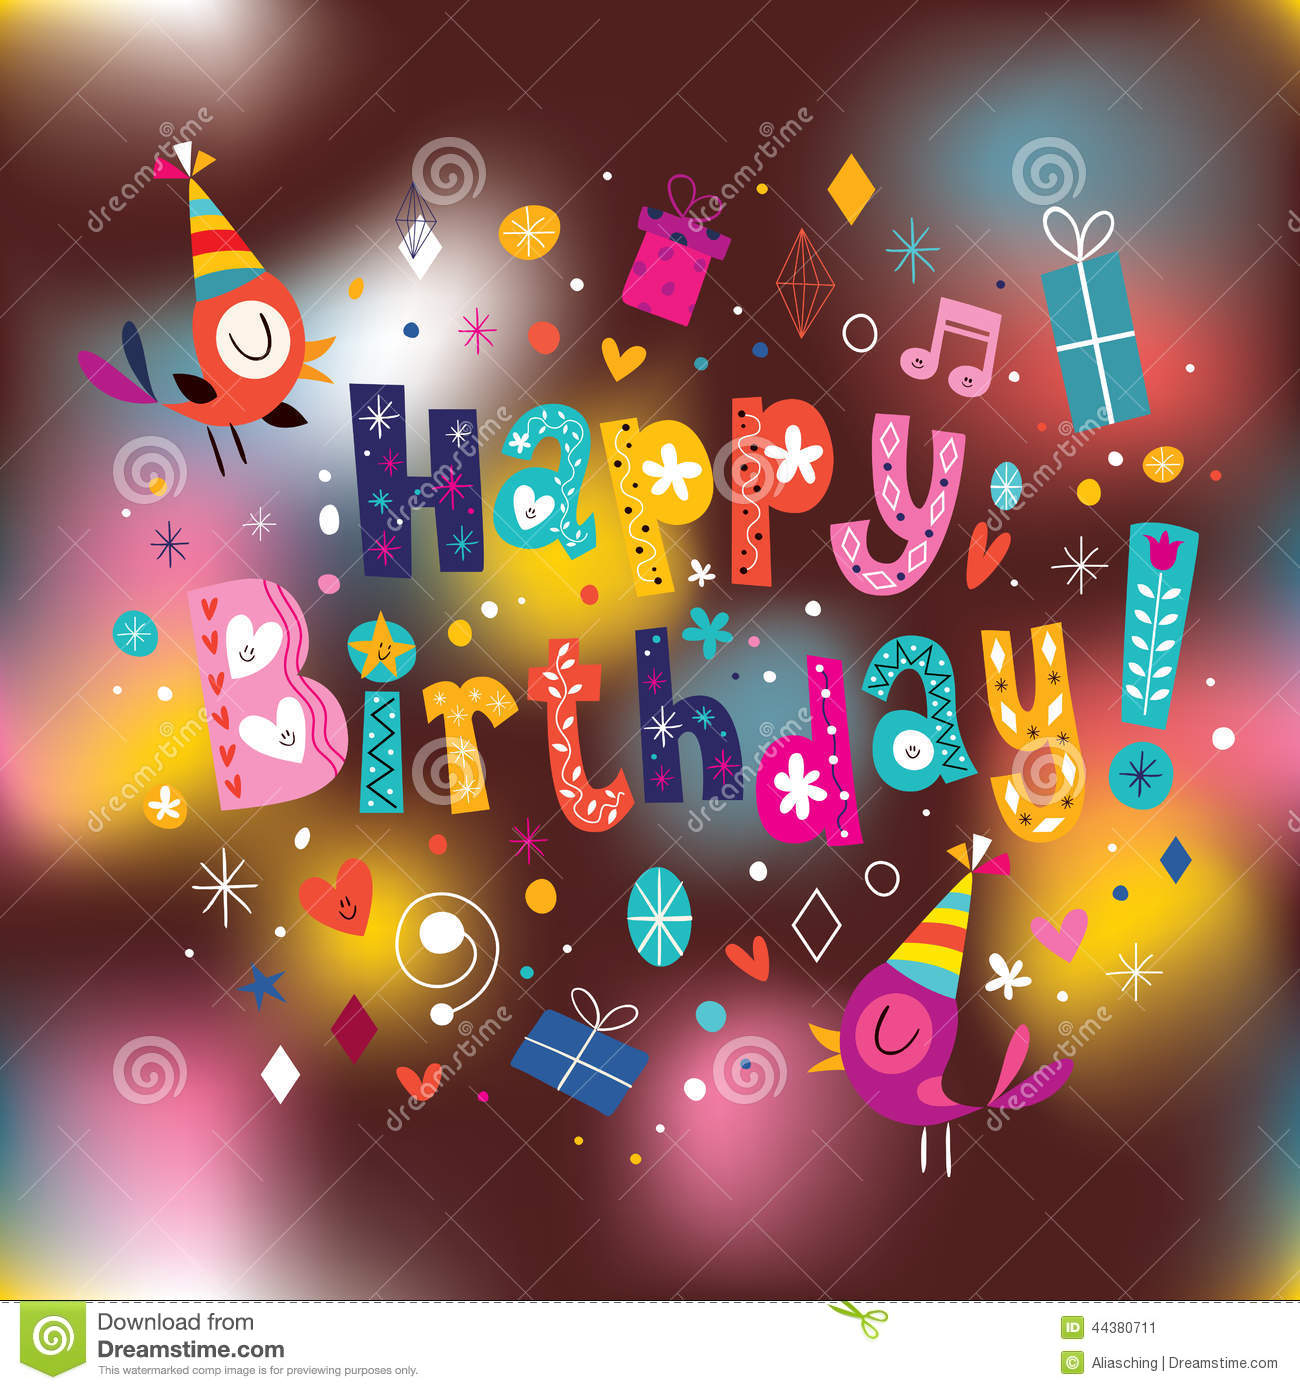 happy birthday greetings pictures ; happy-birthday-card-greeting-cute-birds-44380711